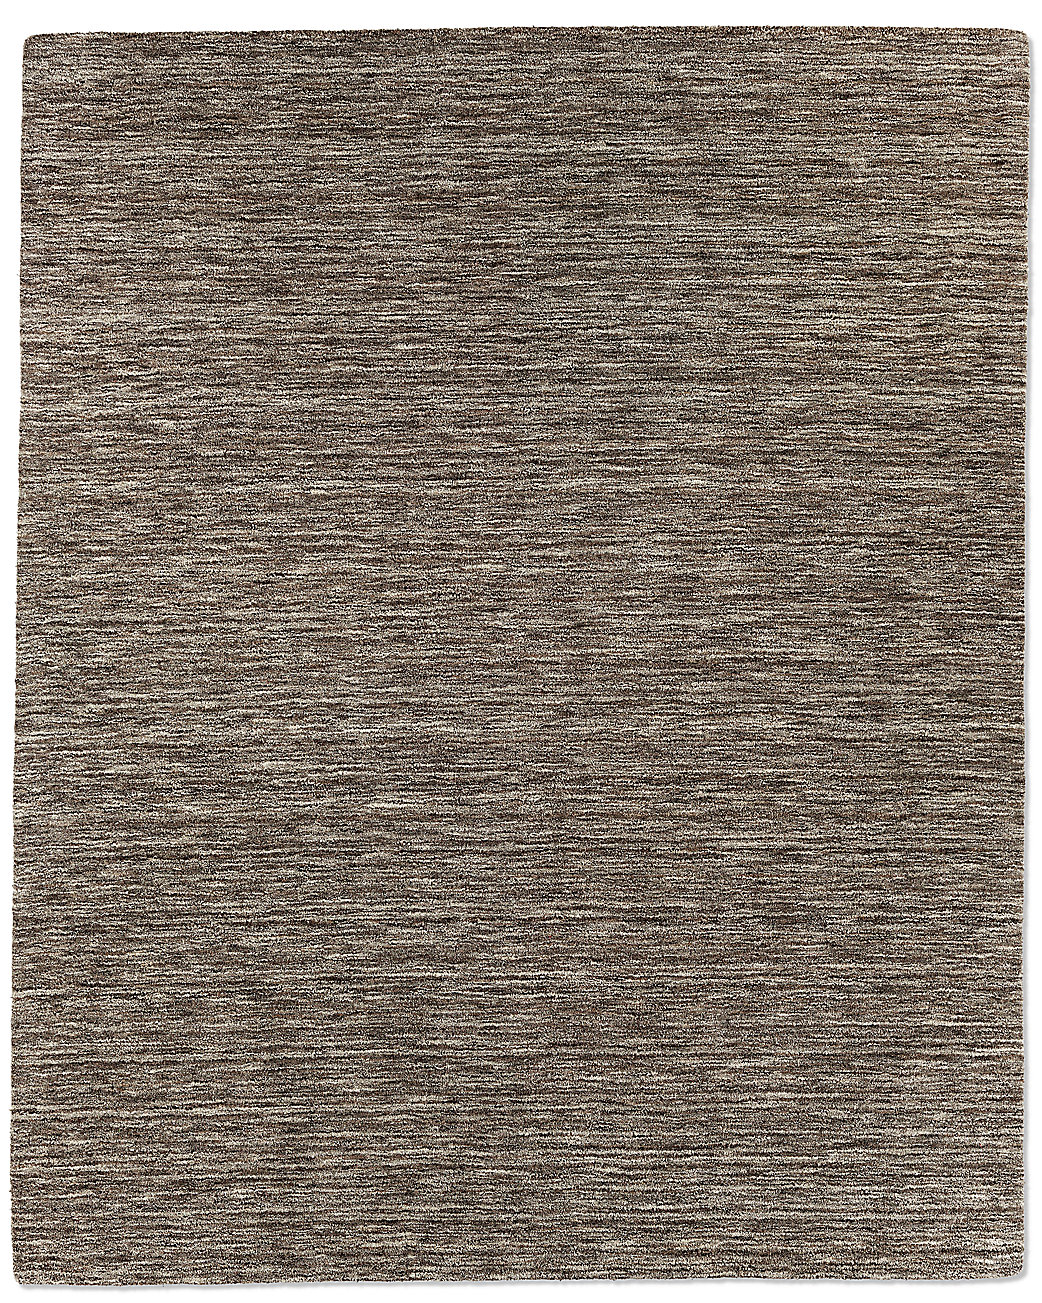 Striated Plush Wool Rug - Marled